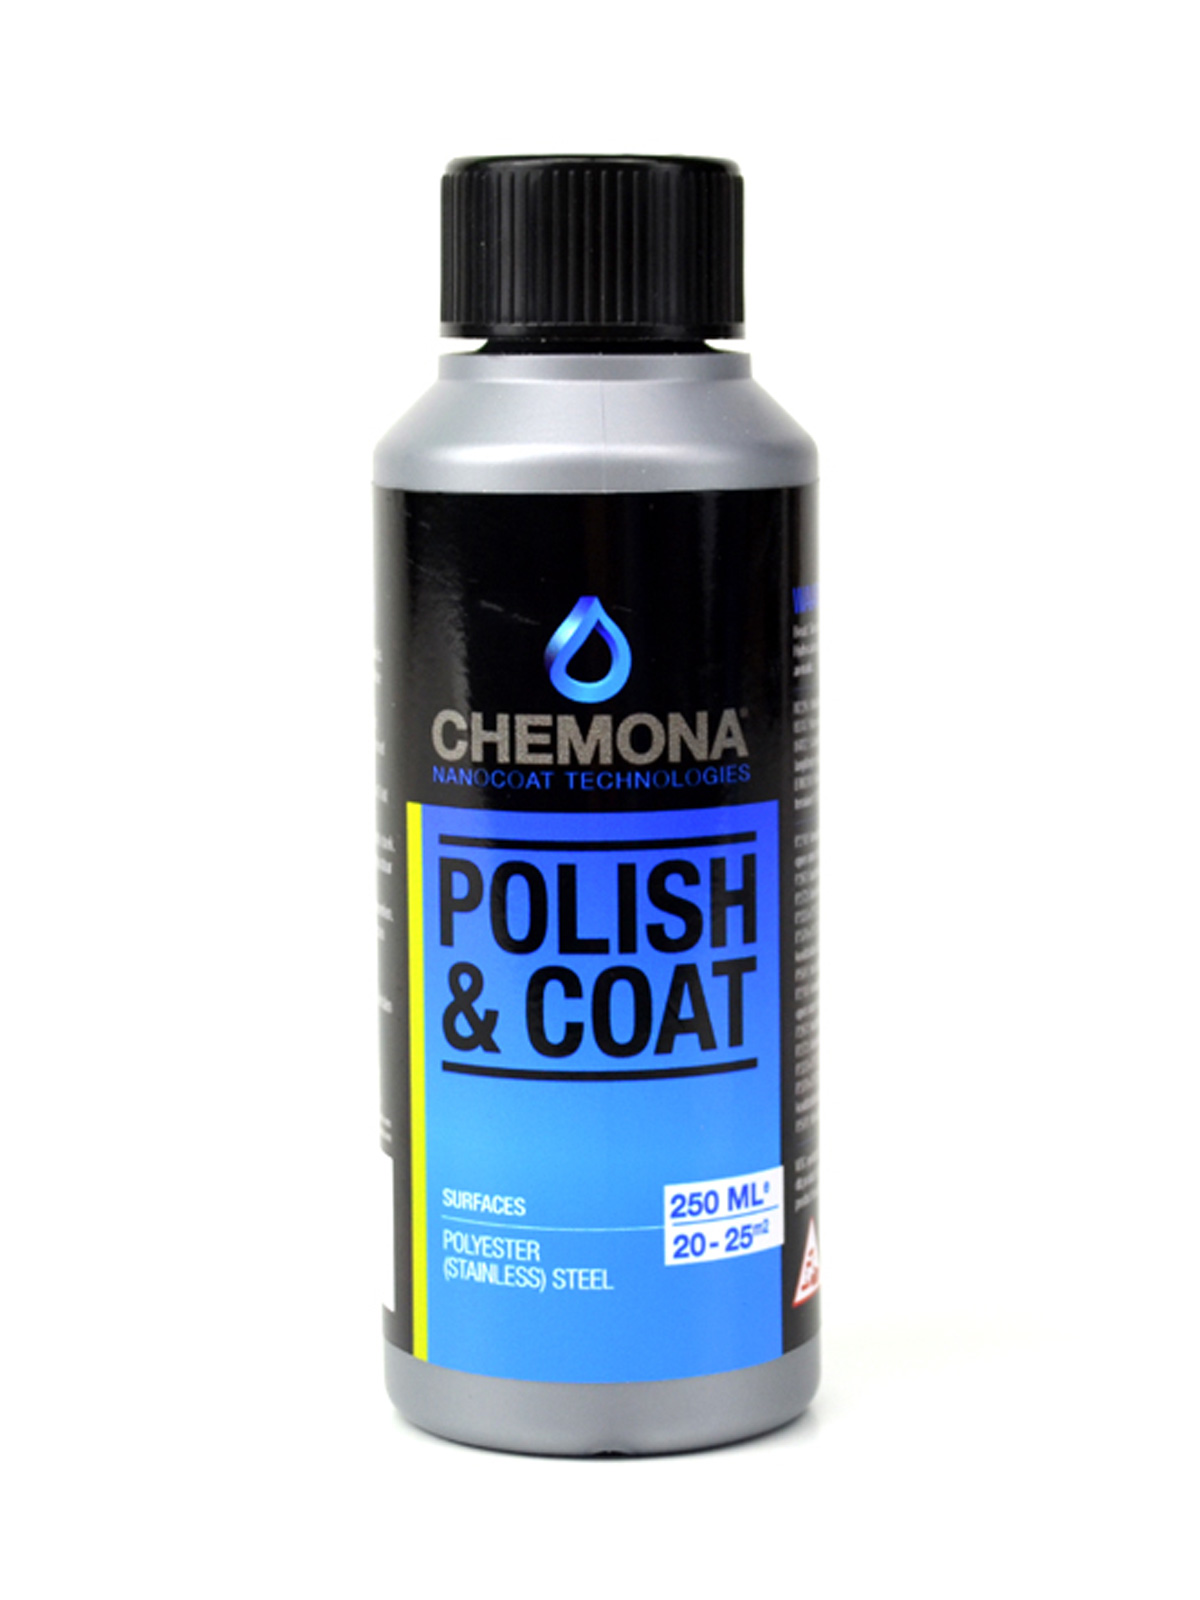 Chemona Polish & Coat